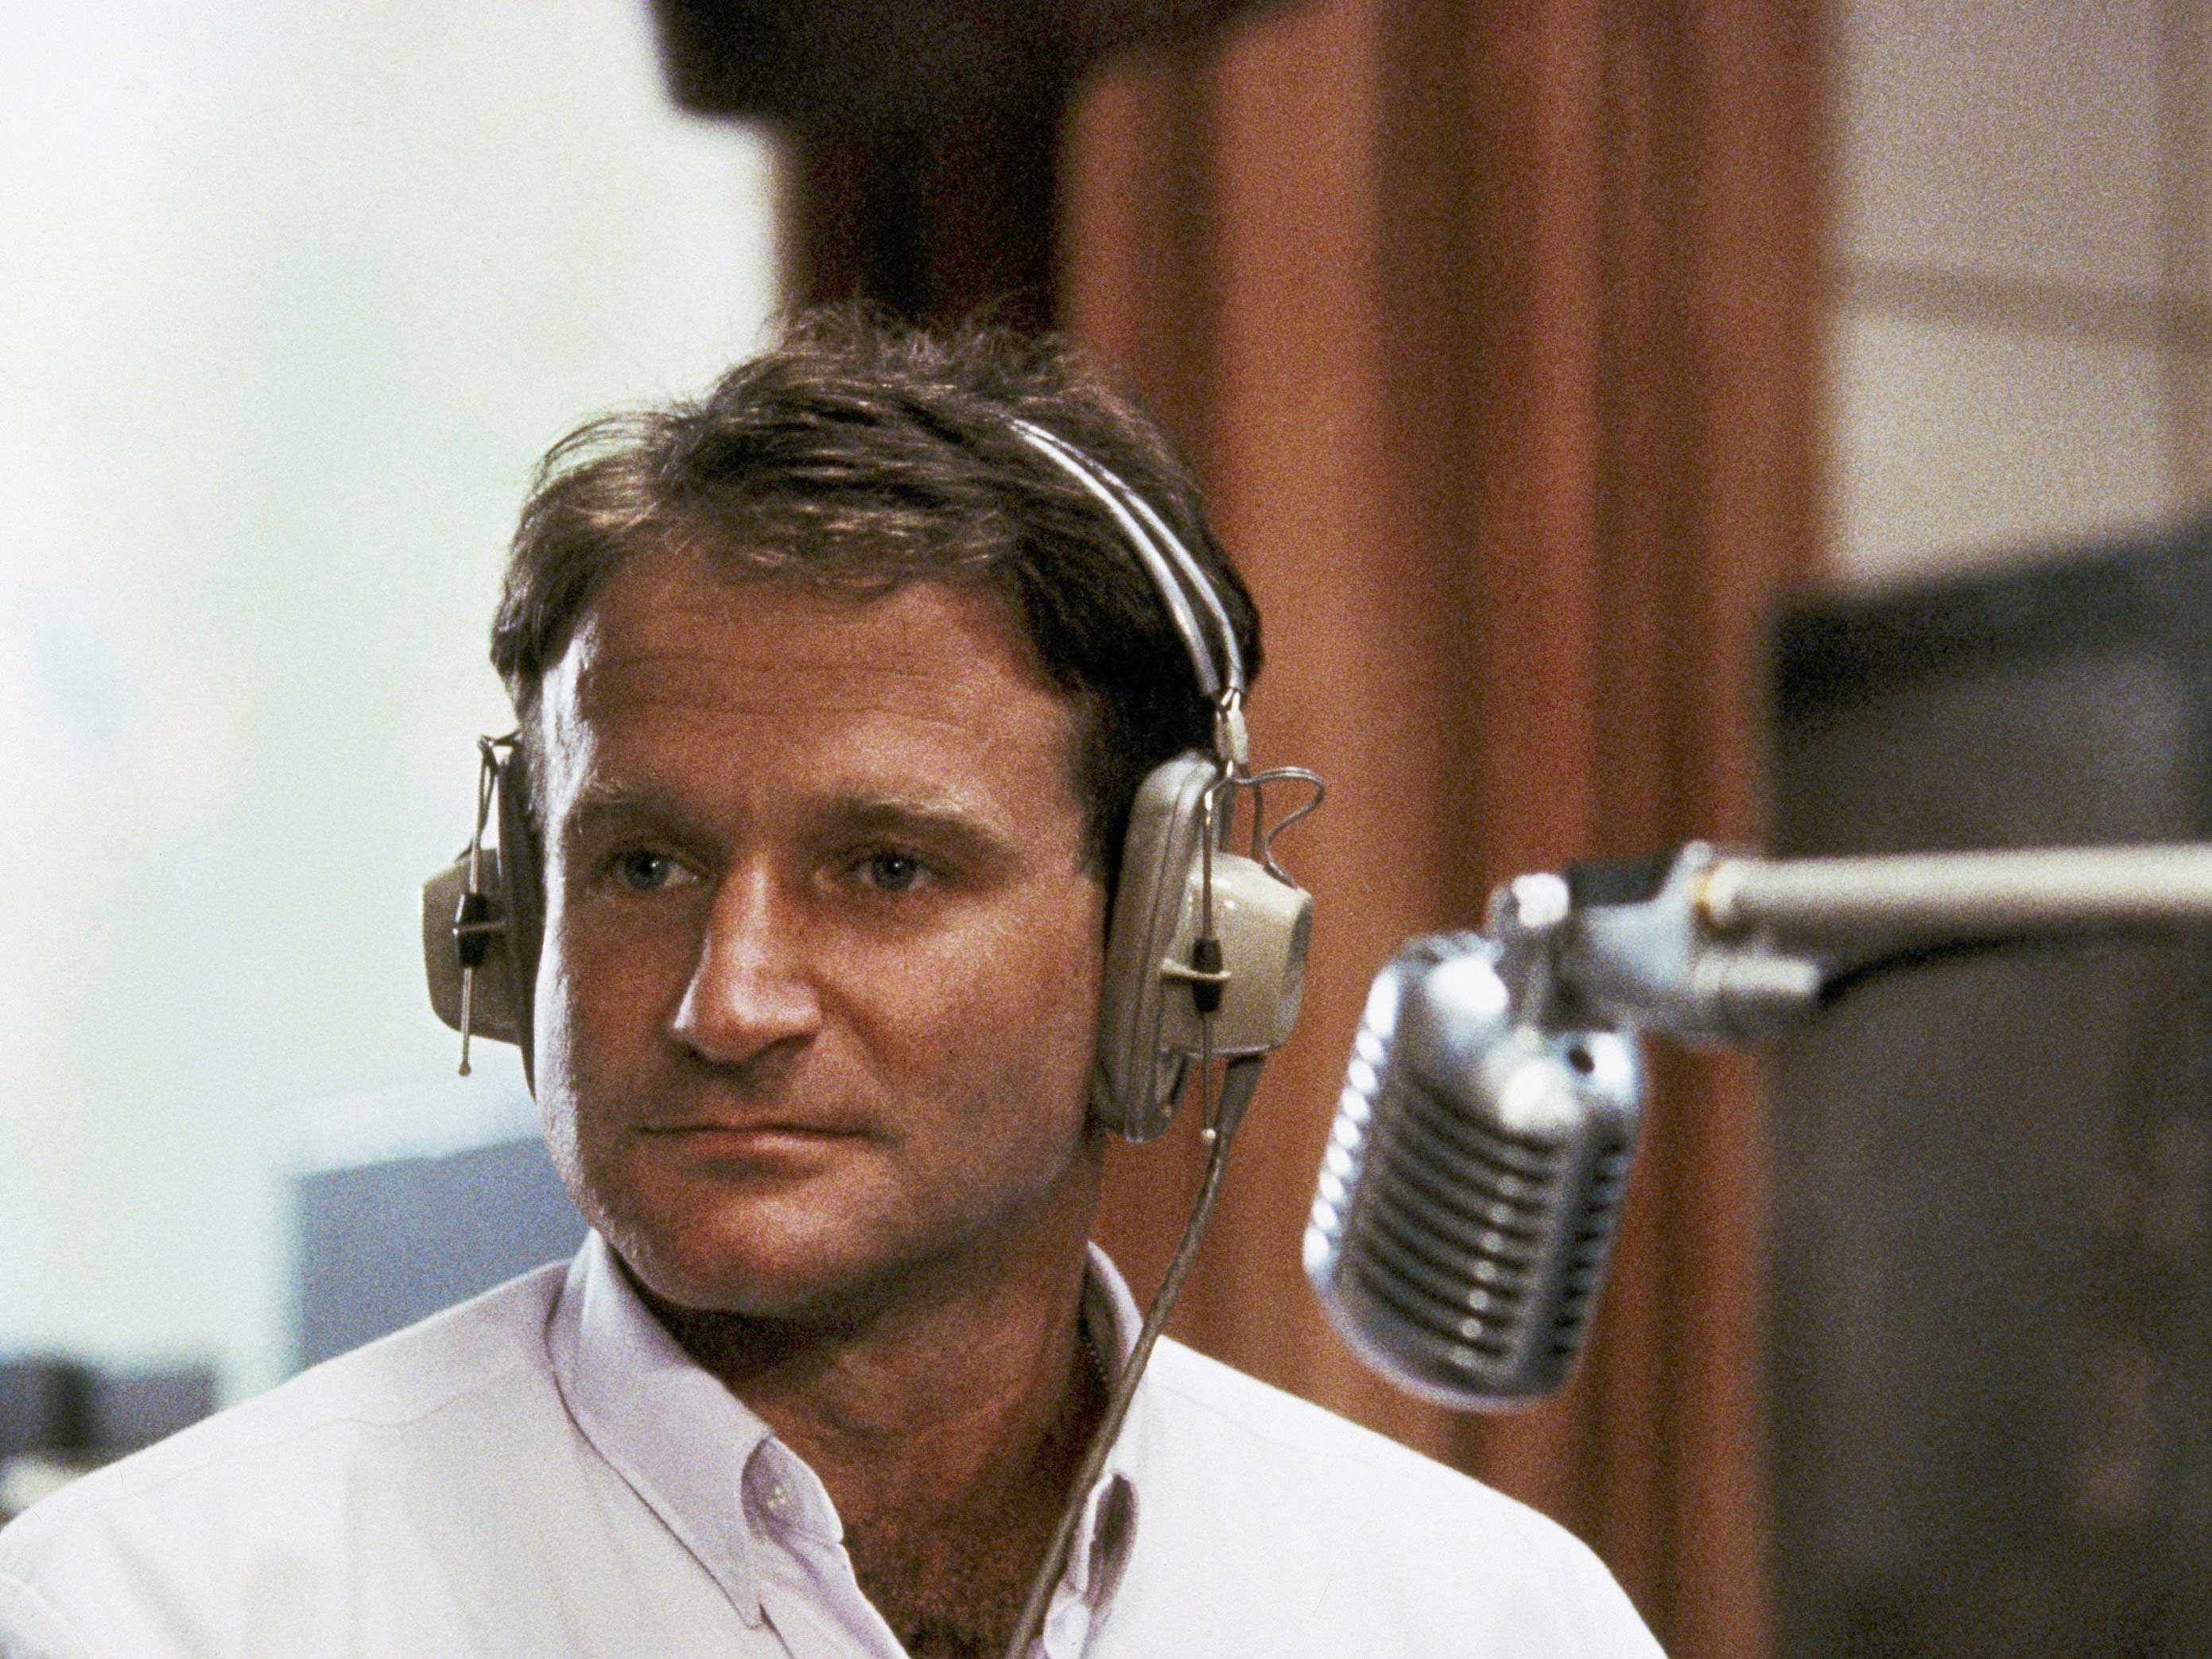 The RD Interview: Remembering Robin Williams